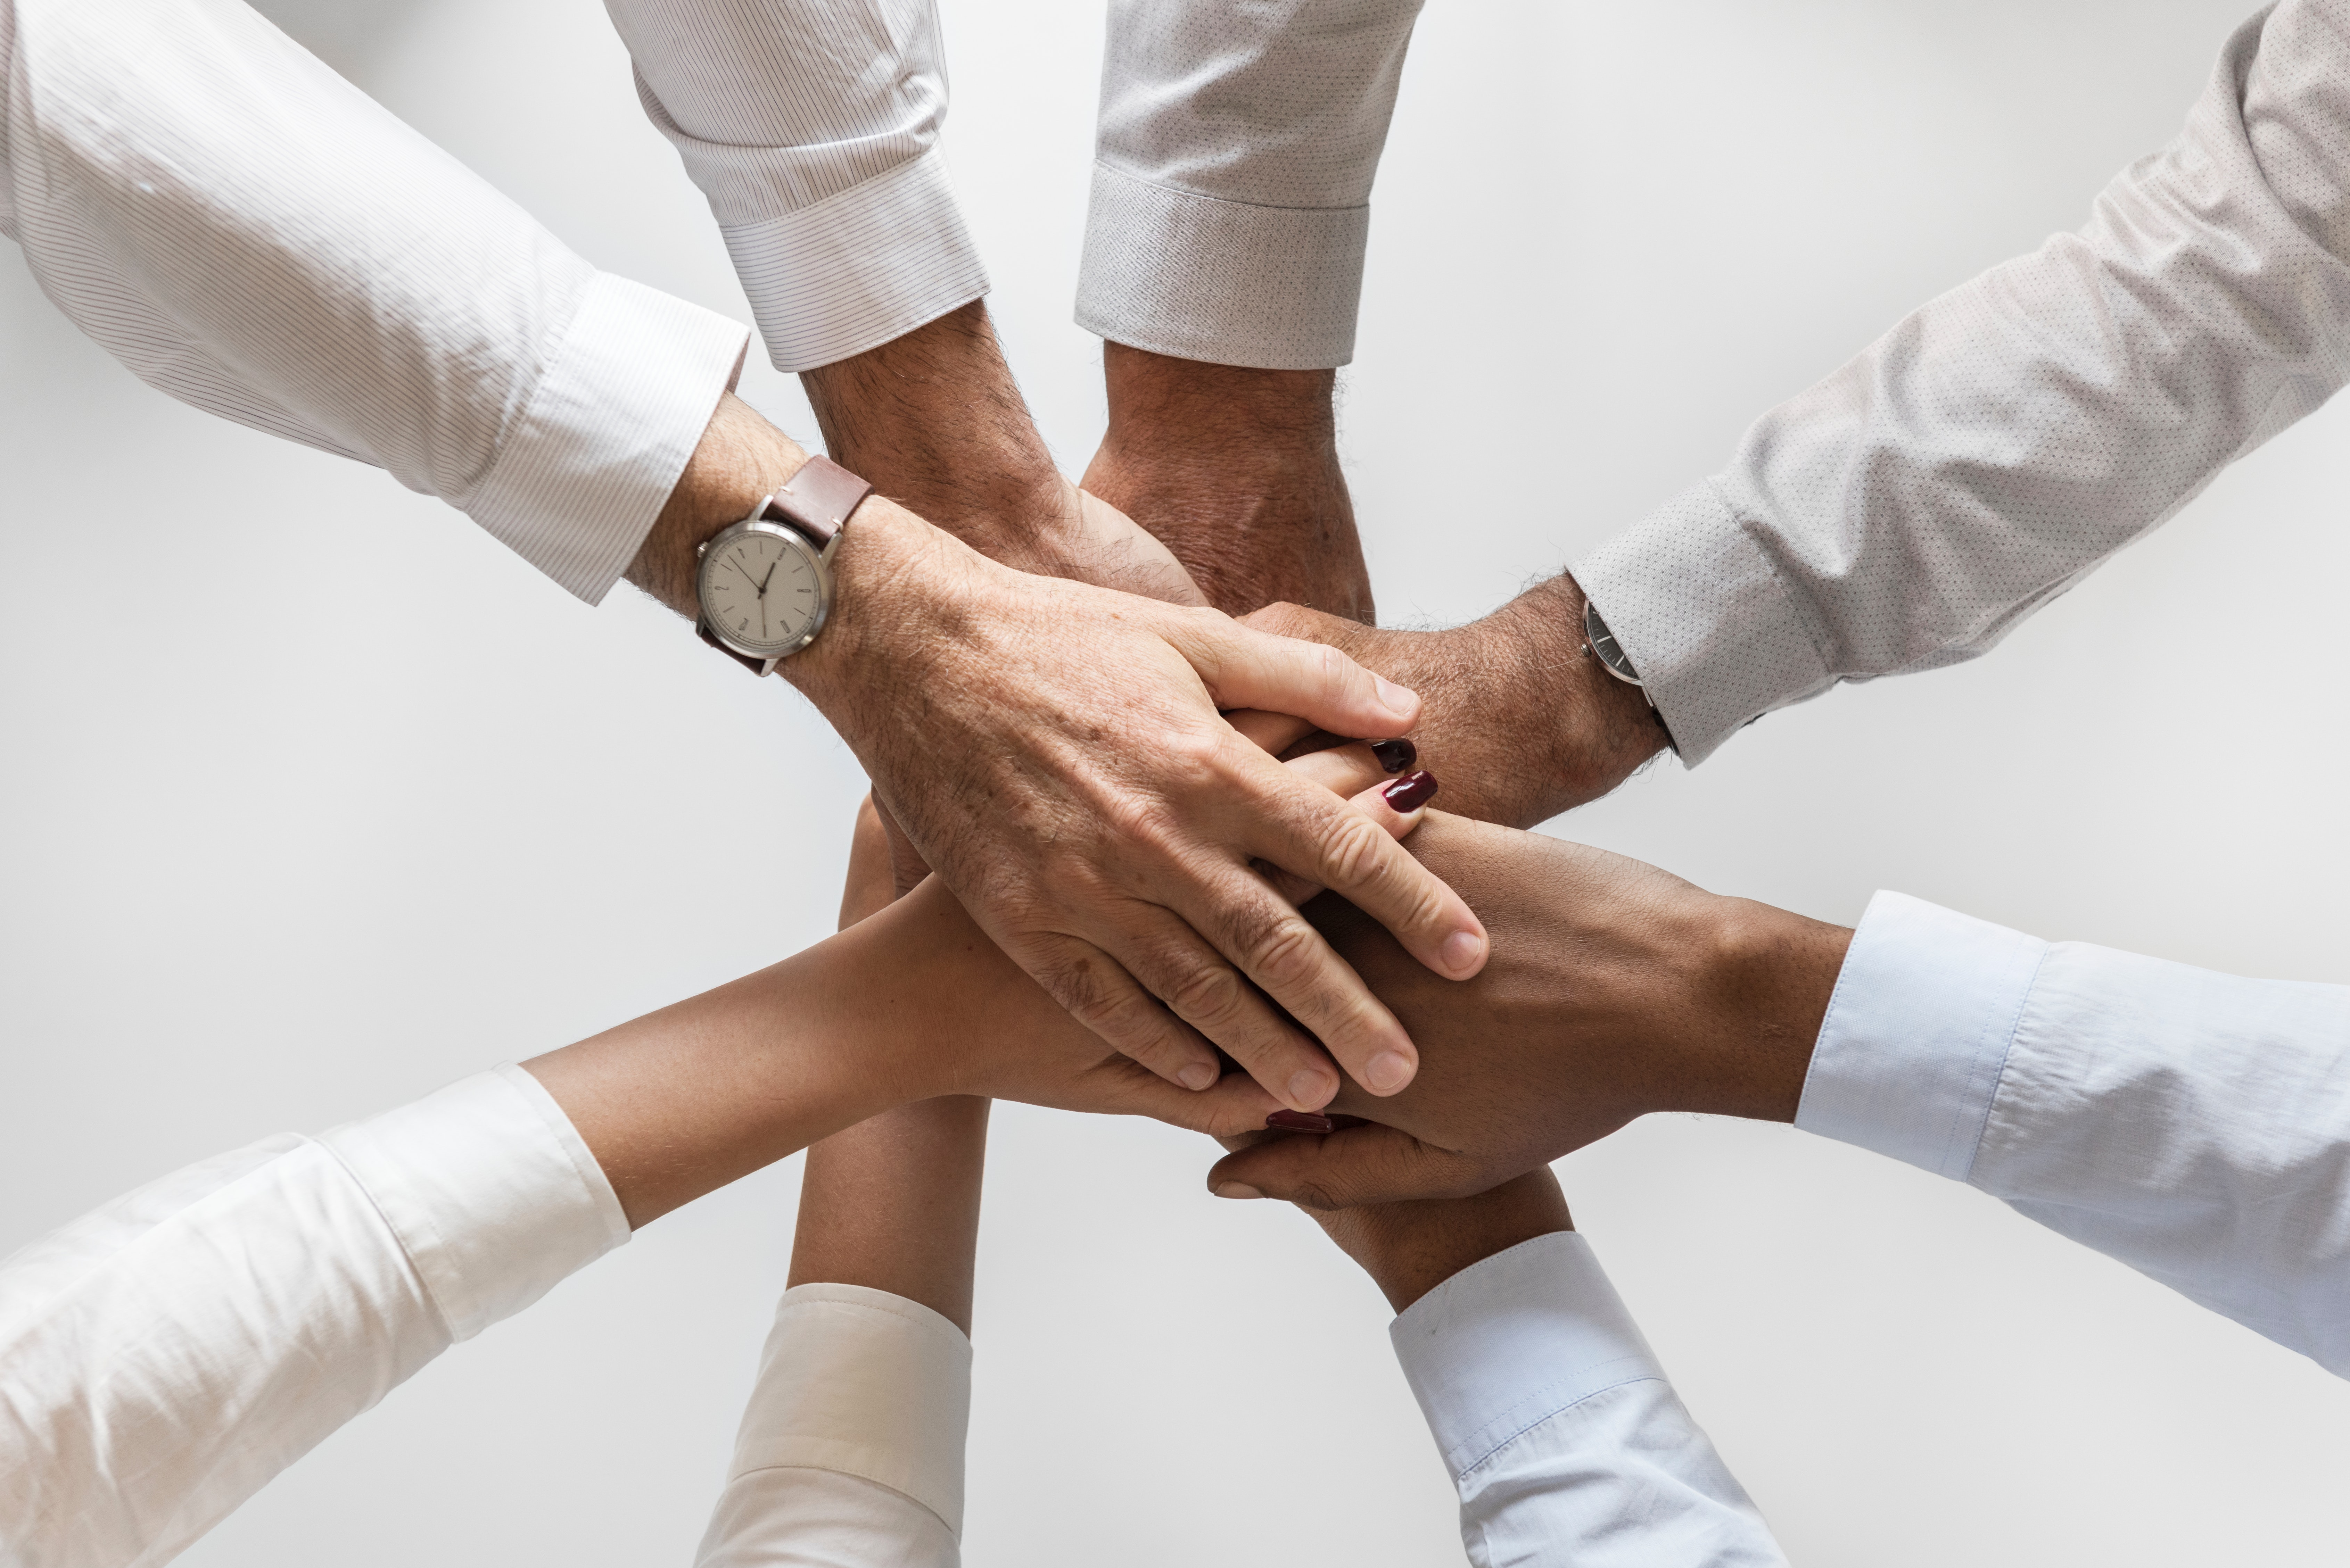 Eight Person Huddling, Collaboration, Friendship, Hands, Holding hands, HQ Photo